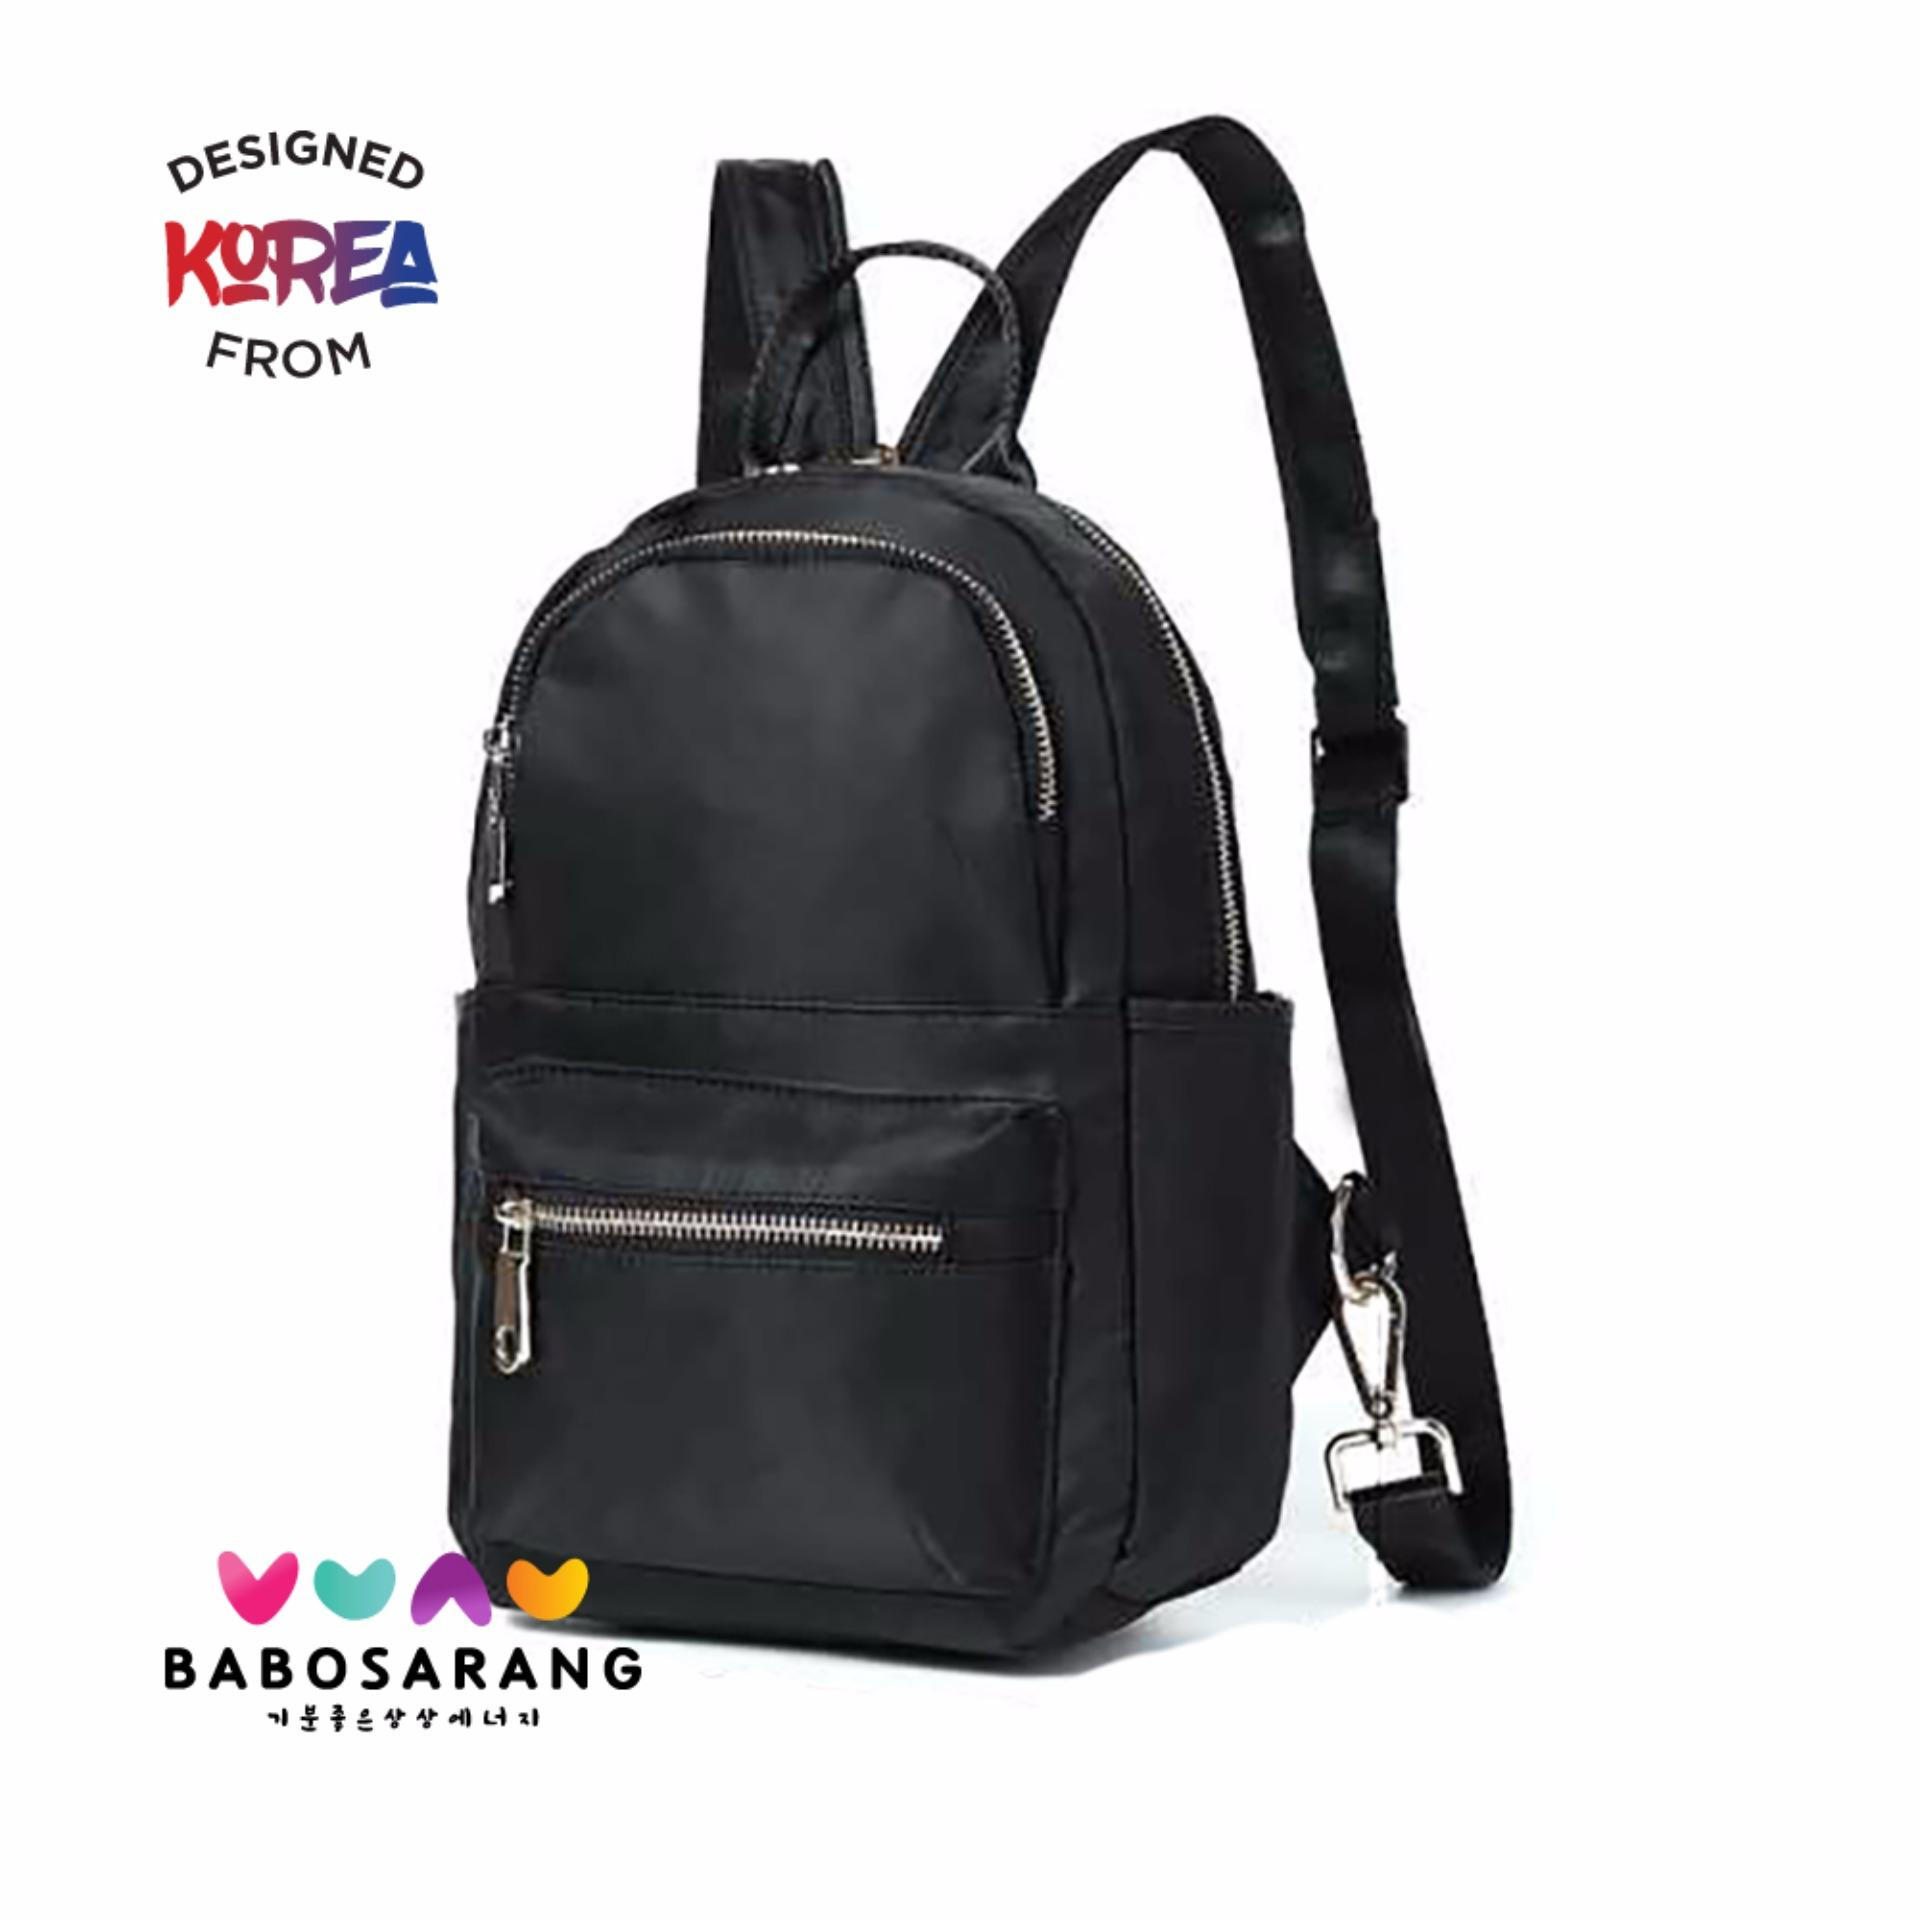 Beli Korean Fashion Style Babosarang Tas Ransel Batam Wanita Backpack Korea Model Fashion Gothic Style Bs2 Babosarang